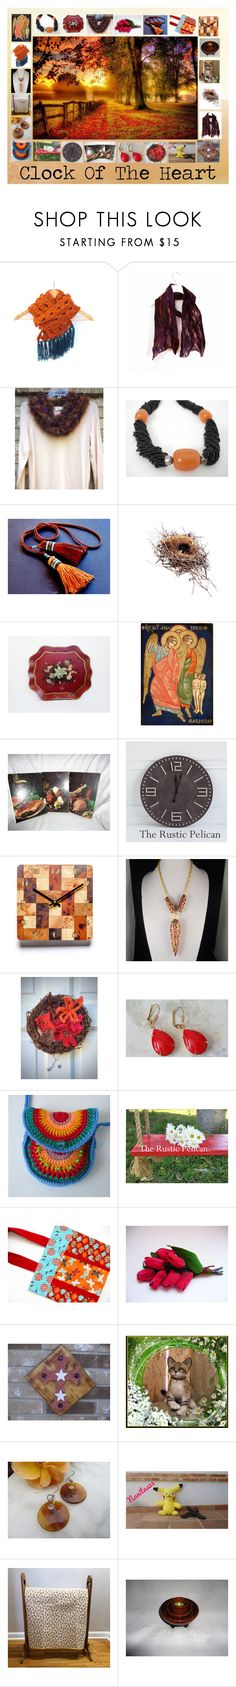 """""""Clock of the Heart: Handmade & Vintage Gift Ideas"""" by paulinemcewen on Polyvore featuring interior, interiors, interior design, home, home decor, interior decorating, rustic, vintage and country"""